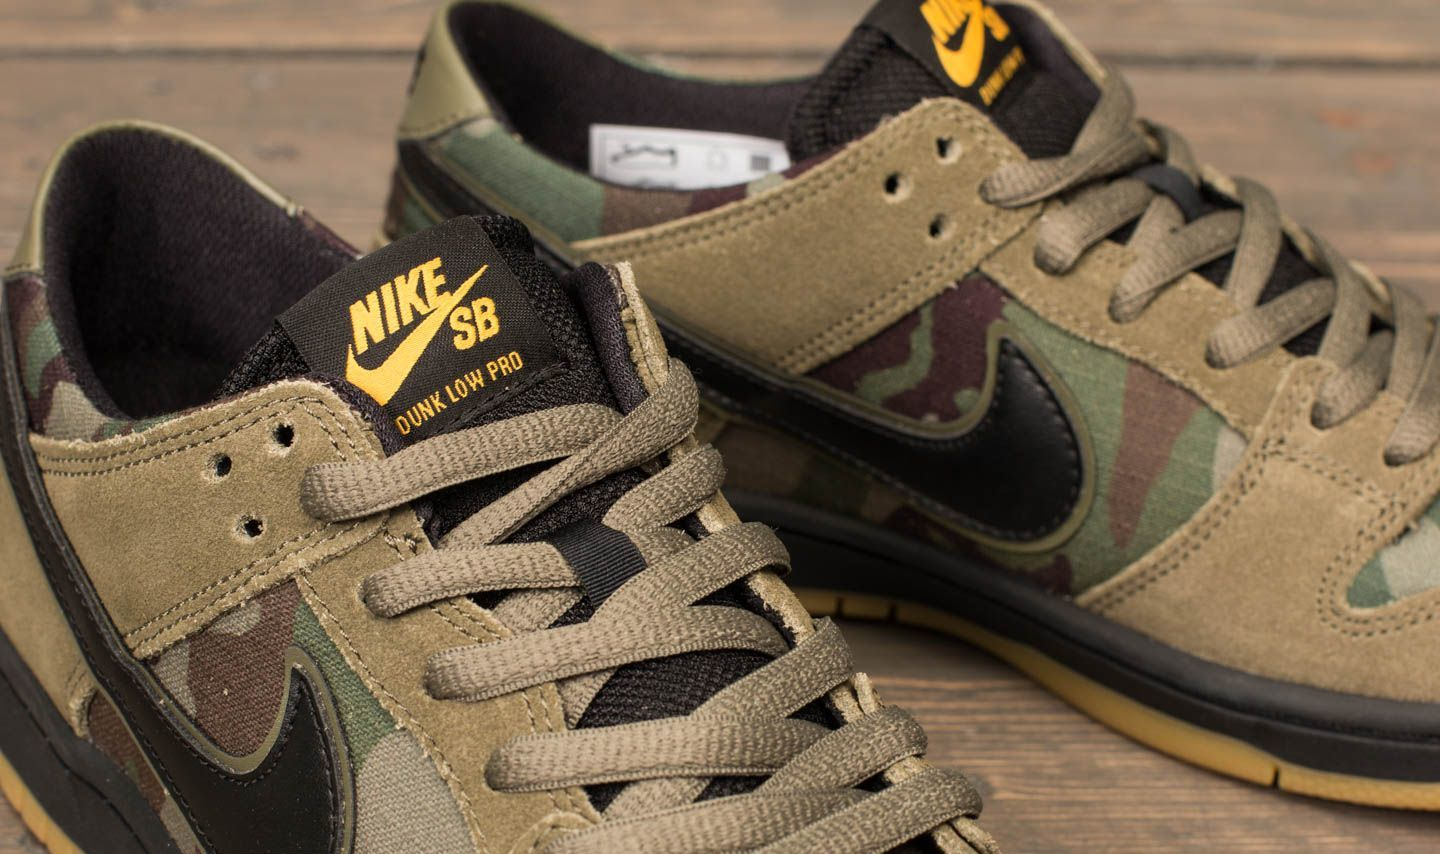 competitive price 2f163 139fe ... spain nike sb zoom dunk low pro medium olive black at a great price 95  5340c